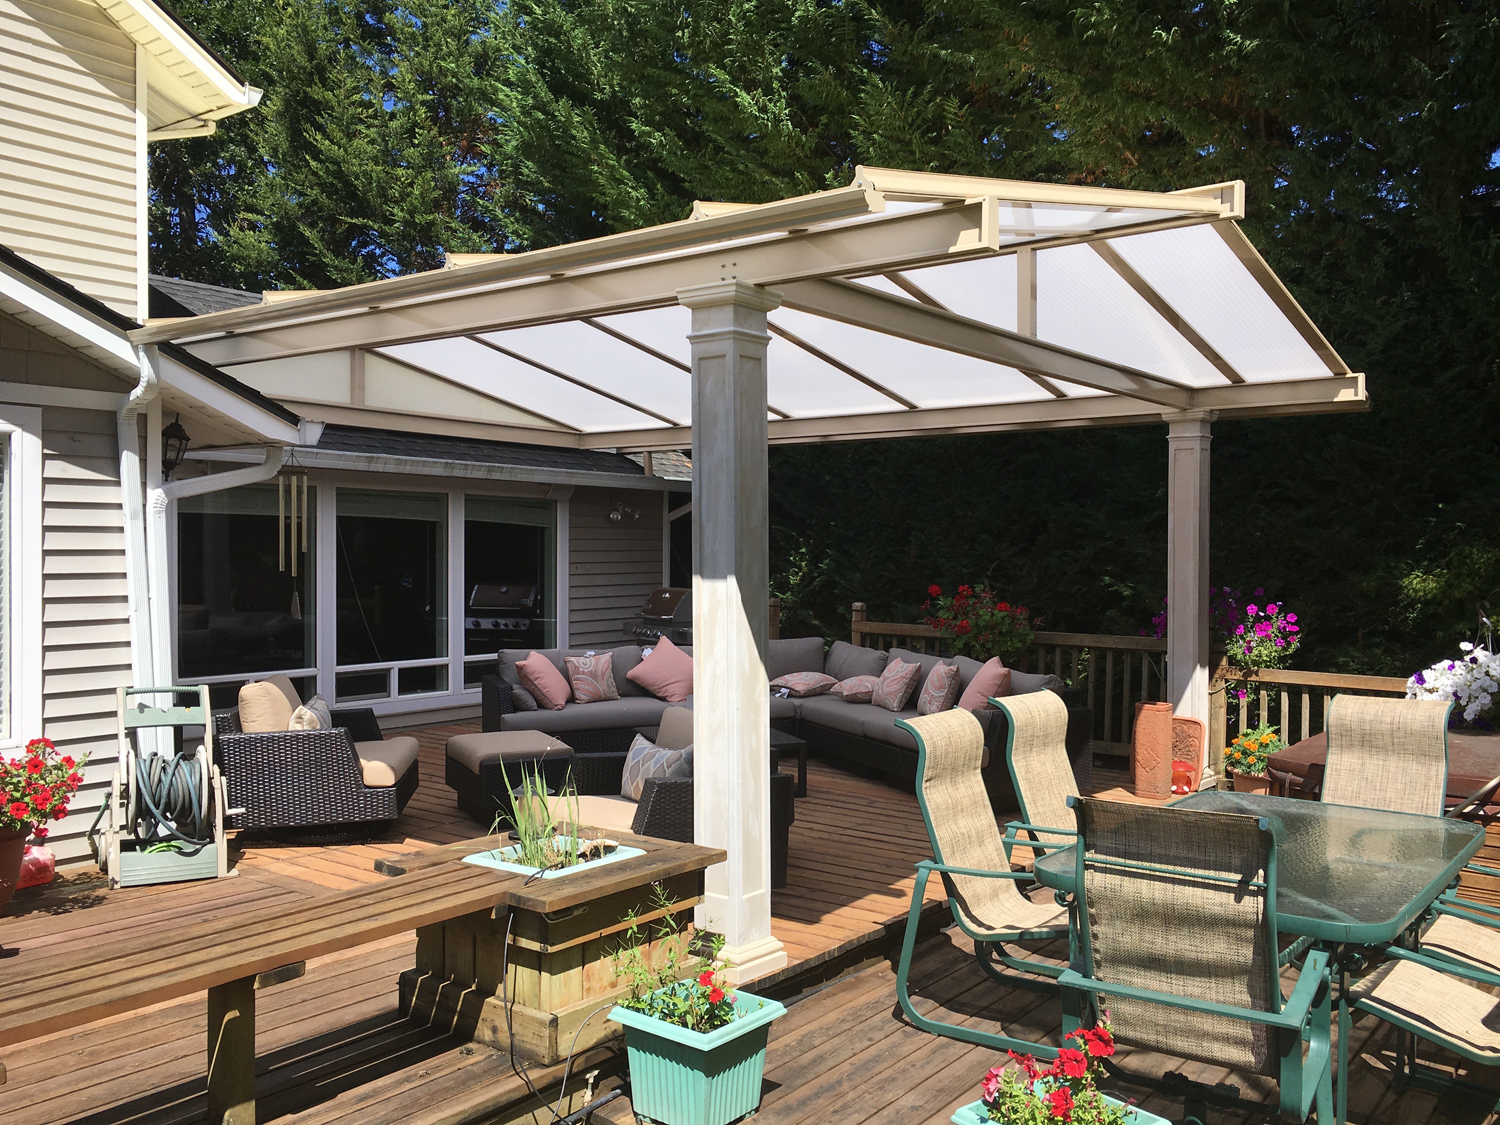 Patio Rooms Covers Sunrooms Swimming Pool Enclosures pertaining to dimensions 1500 X 1125